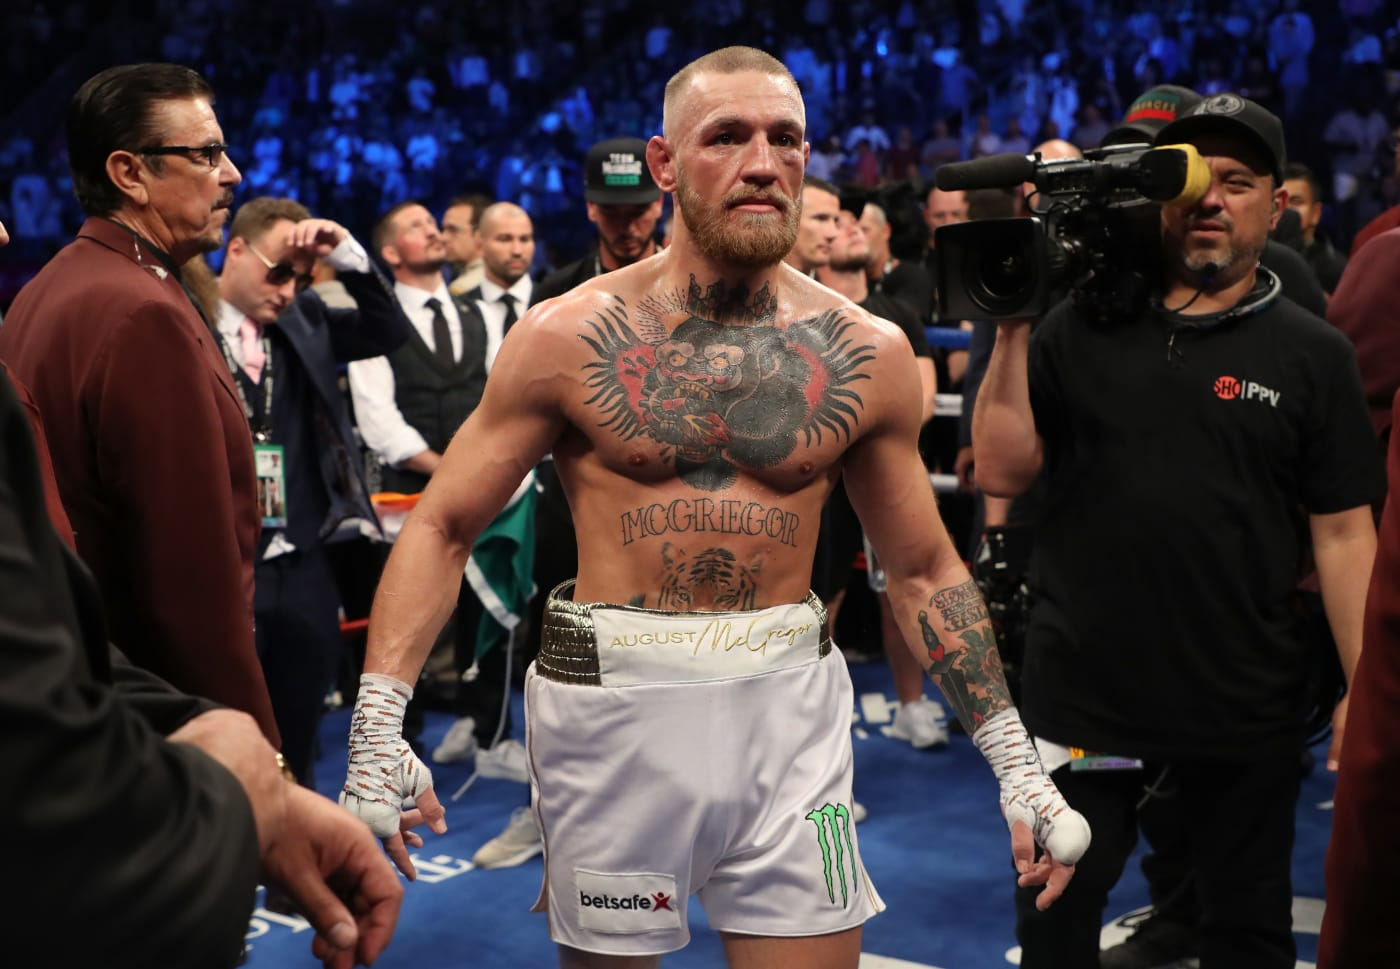 Conor McGregor during his fight with Floyd Mayweather.